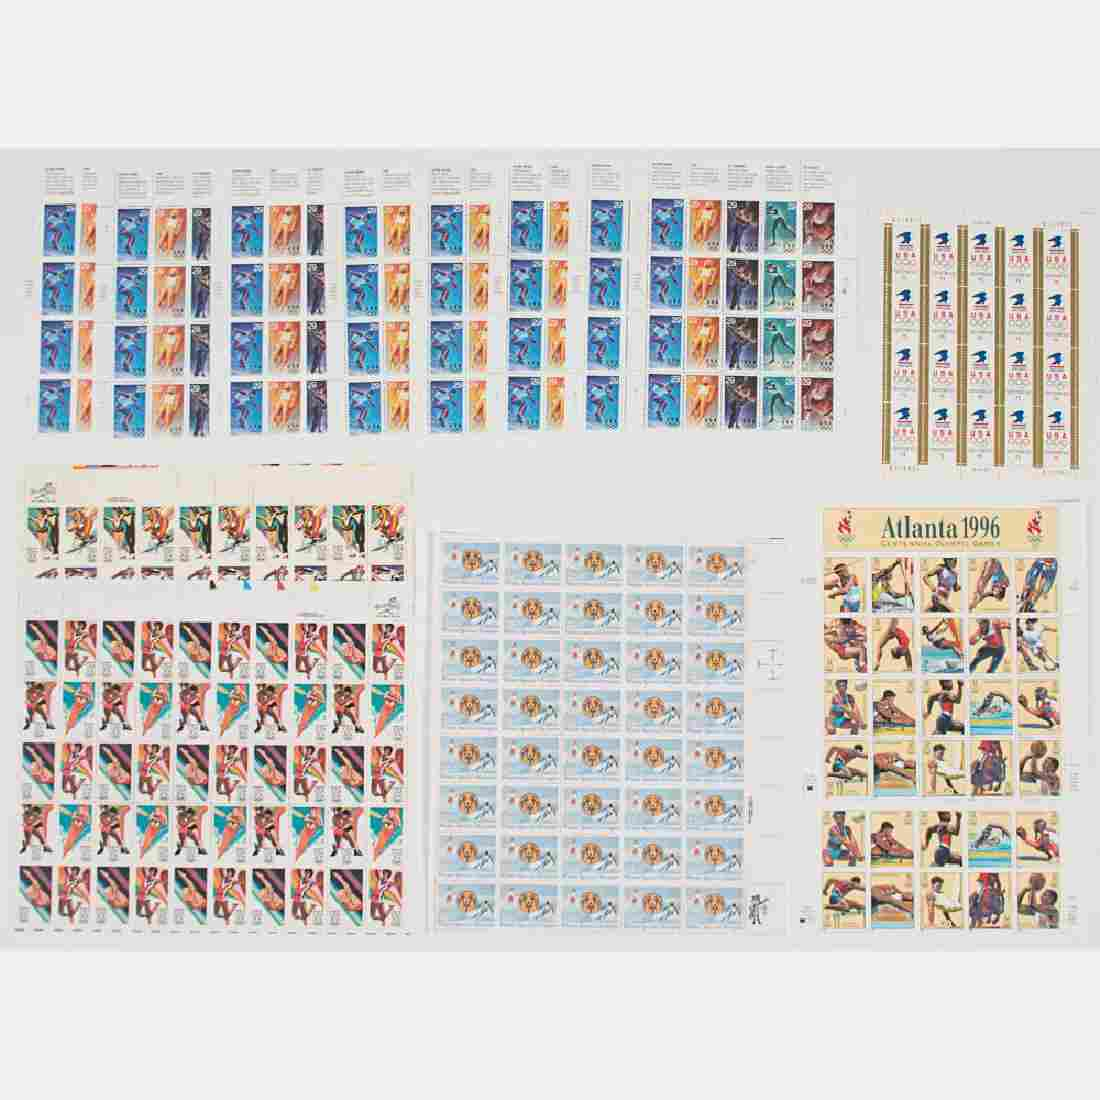 A Collection of US Postage Commemorative Stamp Sheets